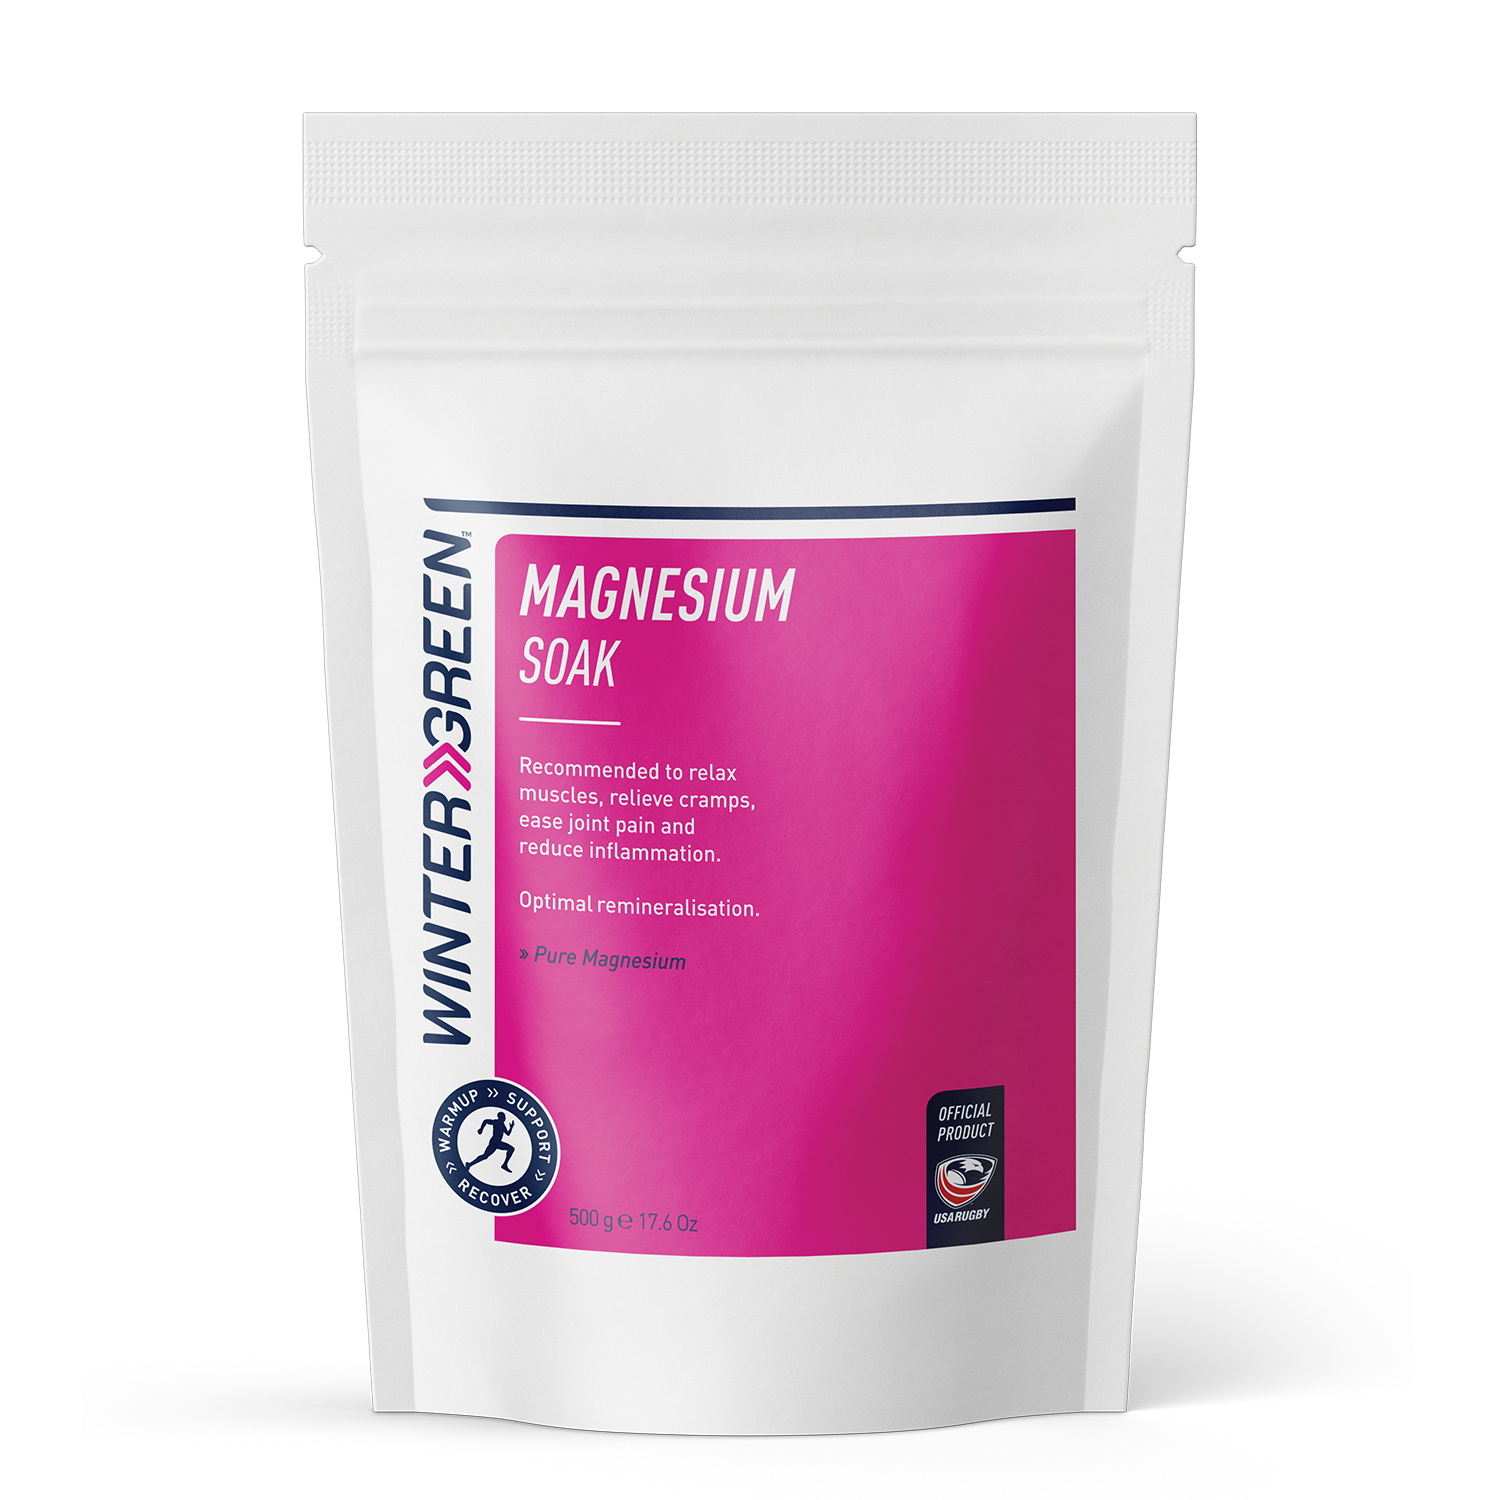 Wintergreen Magnesium Soak 500g packet